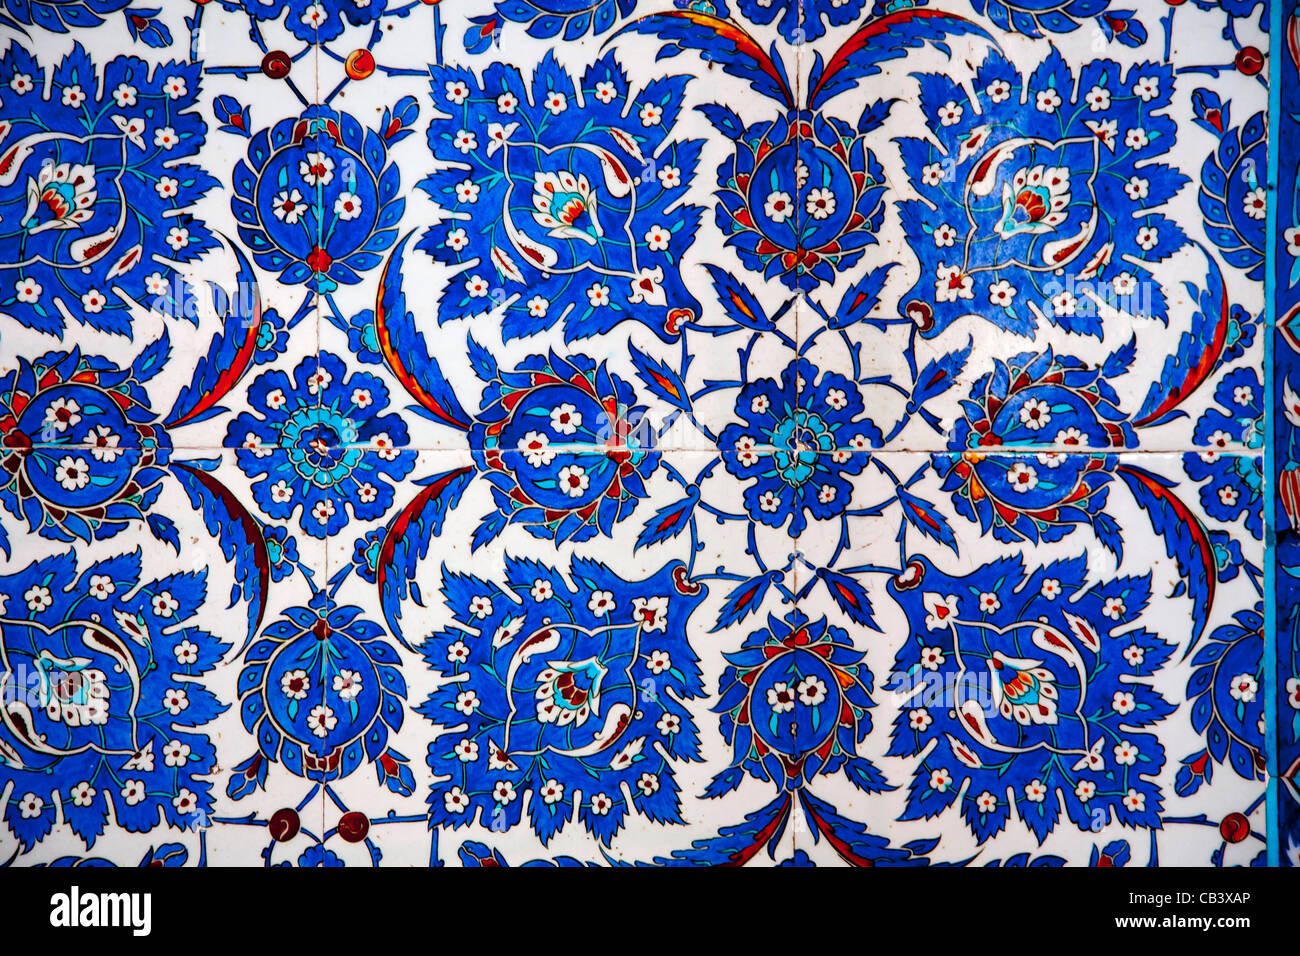 Wall tile in Rüstem Pasha Mosque or Rustempasa Camii. Istanbul, Turkey. - Stock Image